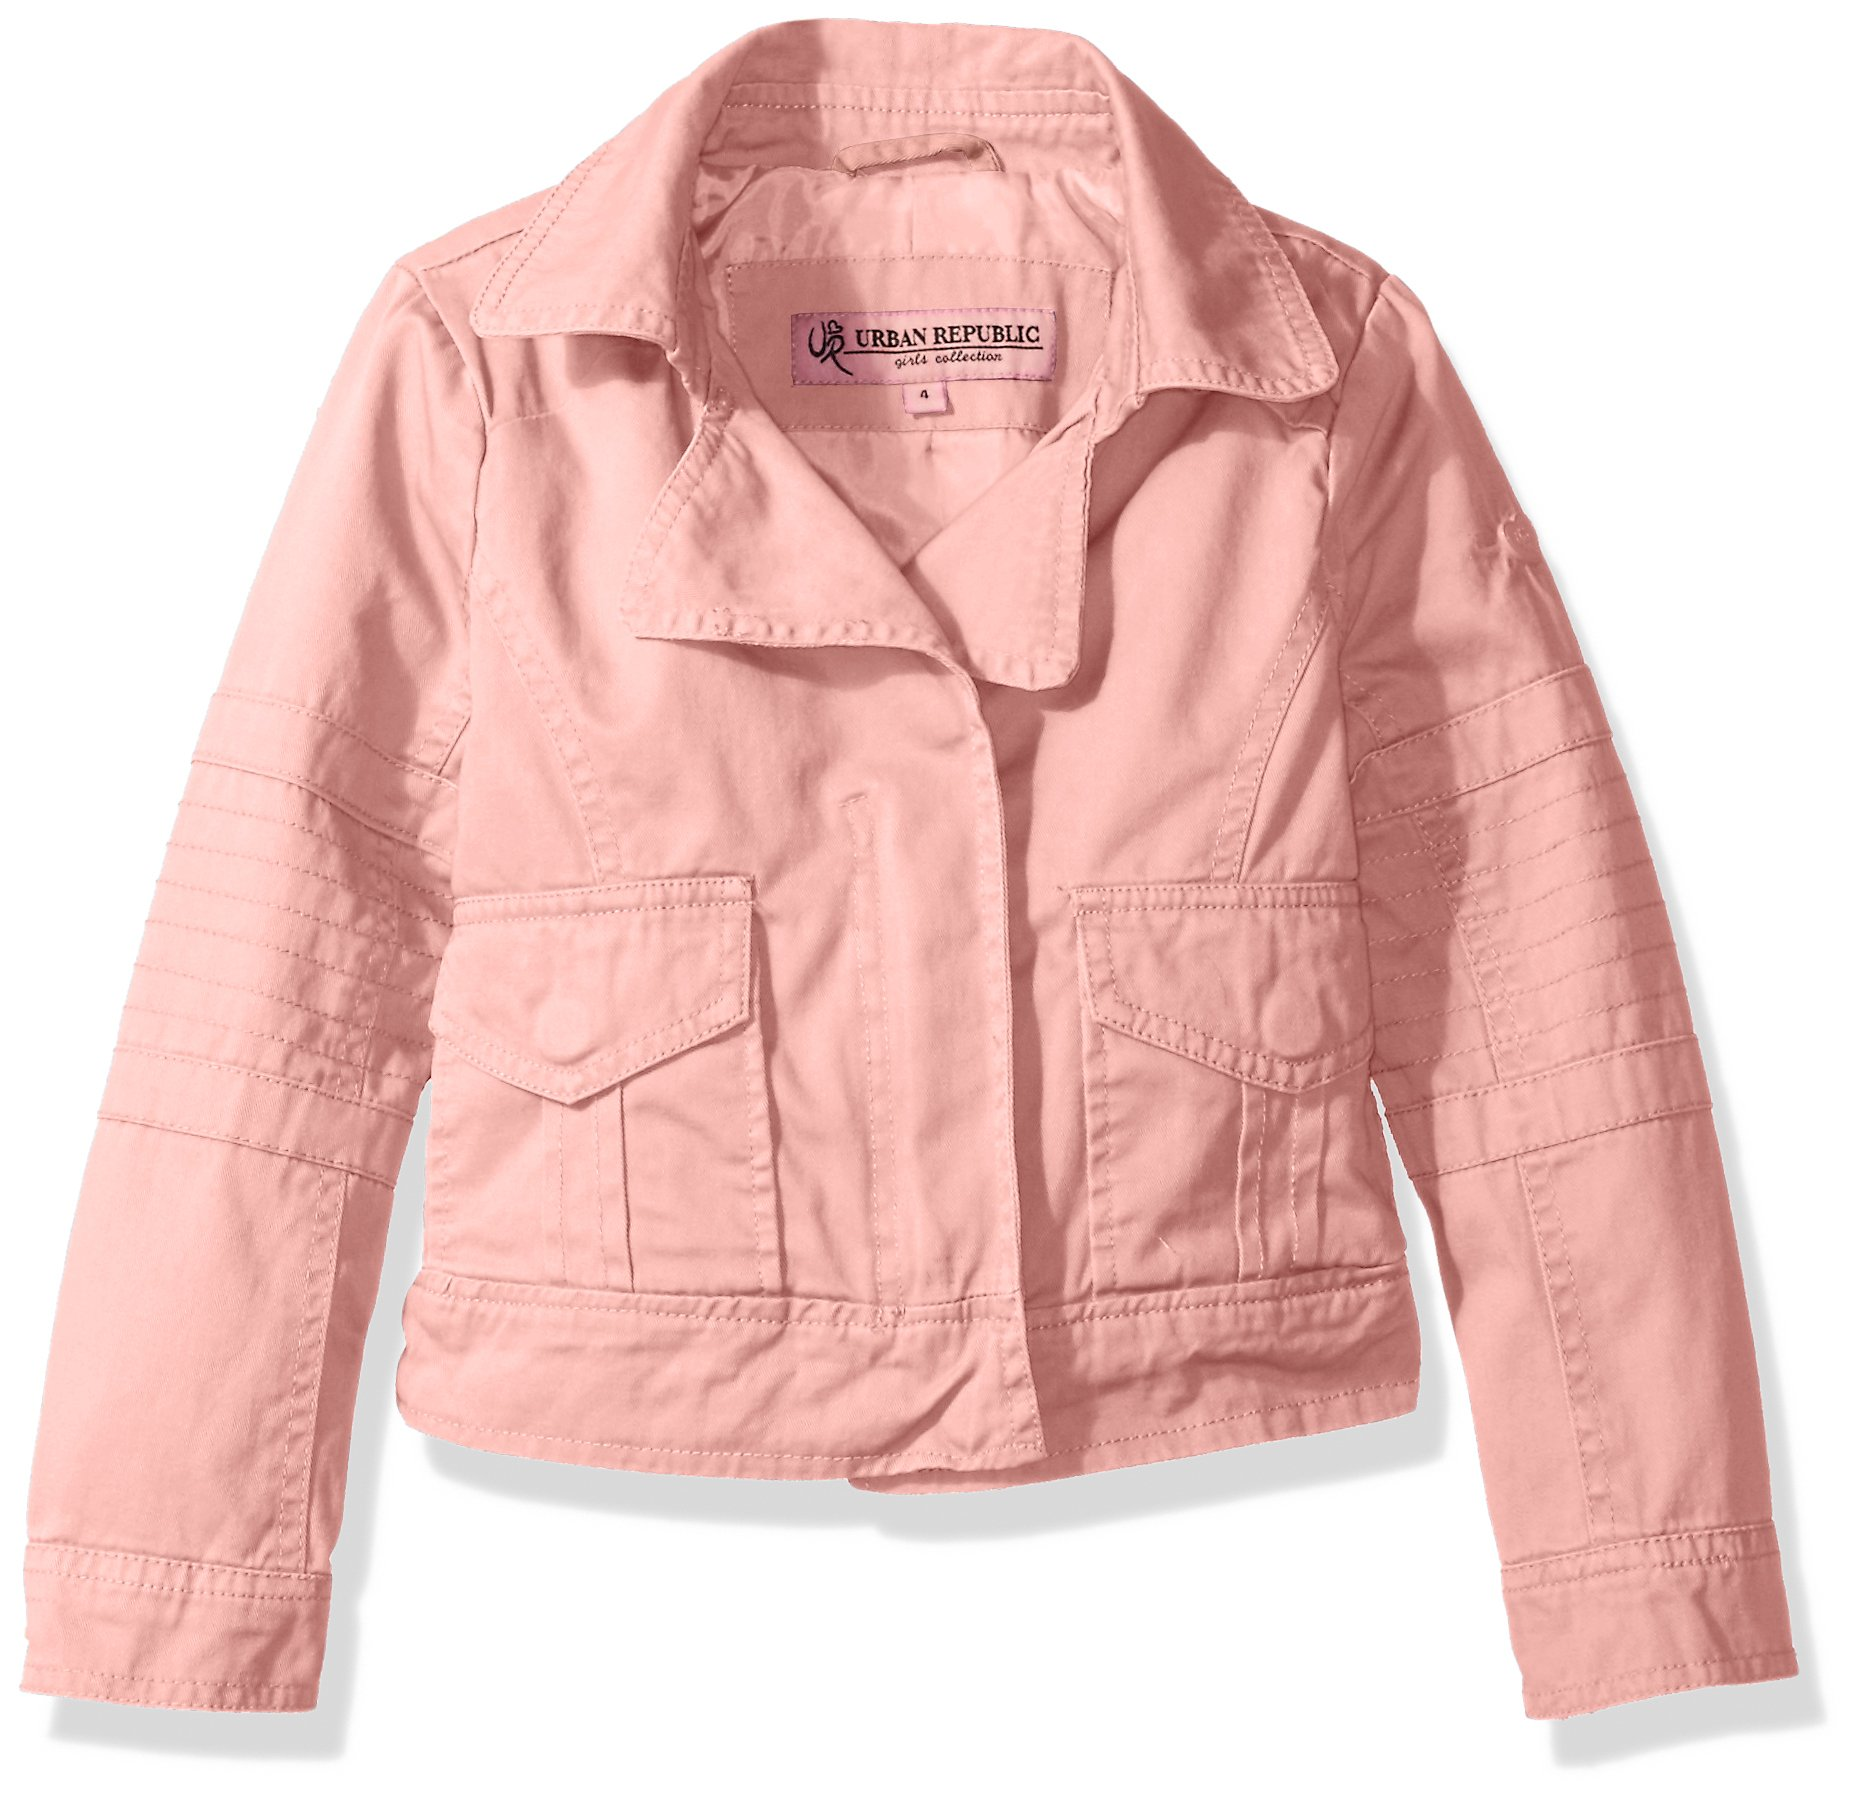 Urban Republic Toddler Girls' Cotton Twill Moto Jacket, Powder Pink, 3T